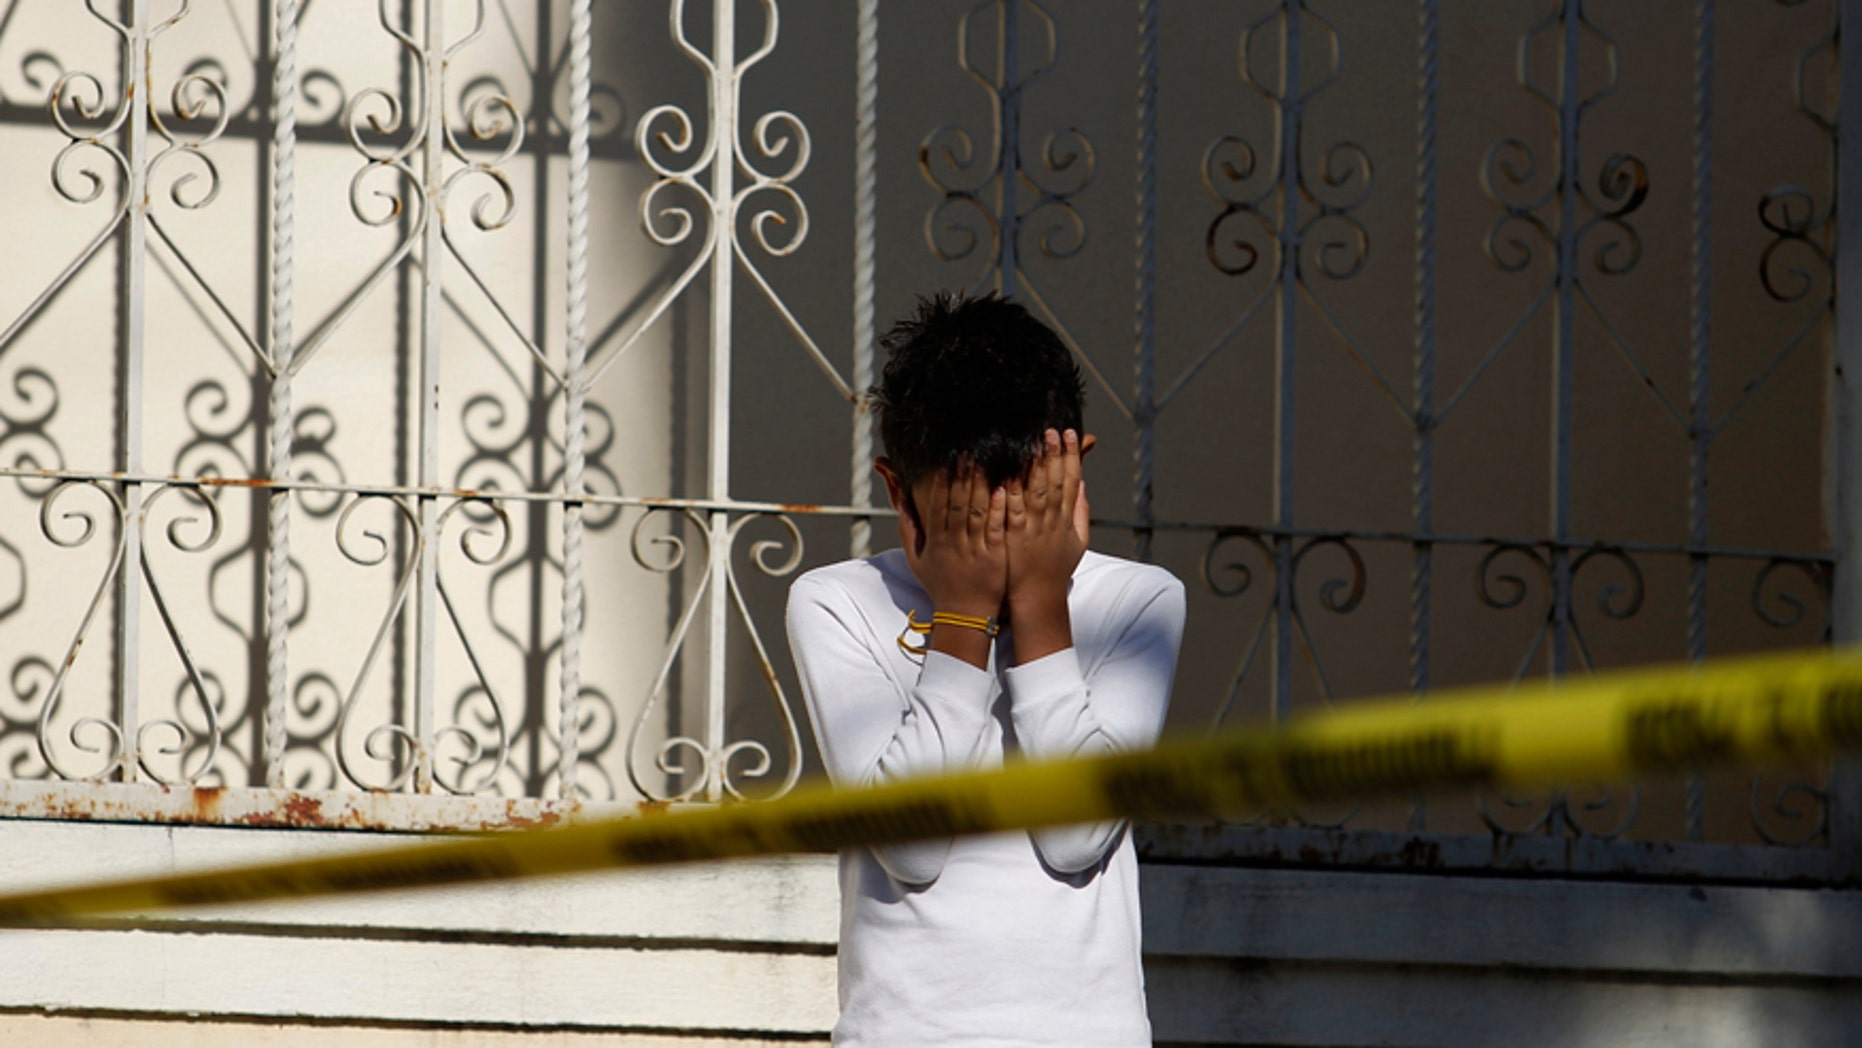 A child covers his face as he stands next to a police cordon at a crime scene where the slain body of a man is found, in Monterrey November 10, 2011. Residents reported that unknown assailants left the body with signs of torture in a park bench, local media reported. REUTERS/Tomas Bravo (MEXICO - Tags: CIVIL UNREST CRIME LAW) - RTR2TURI